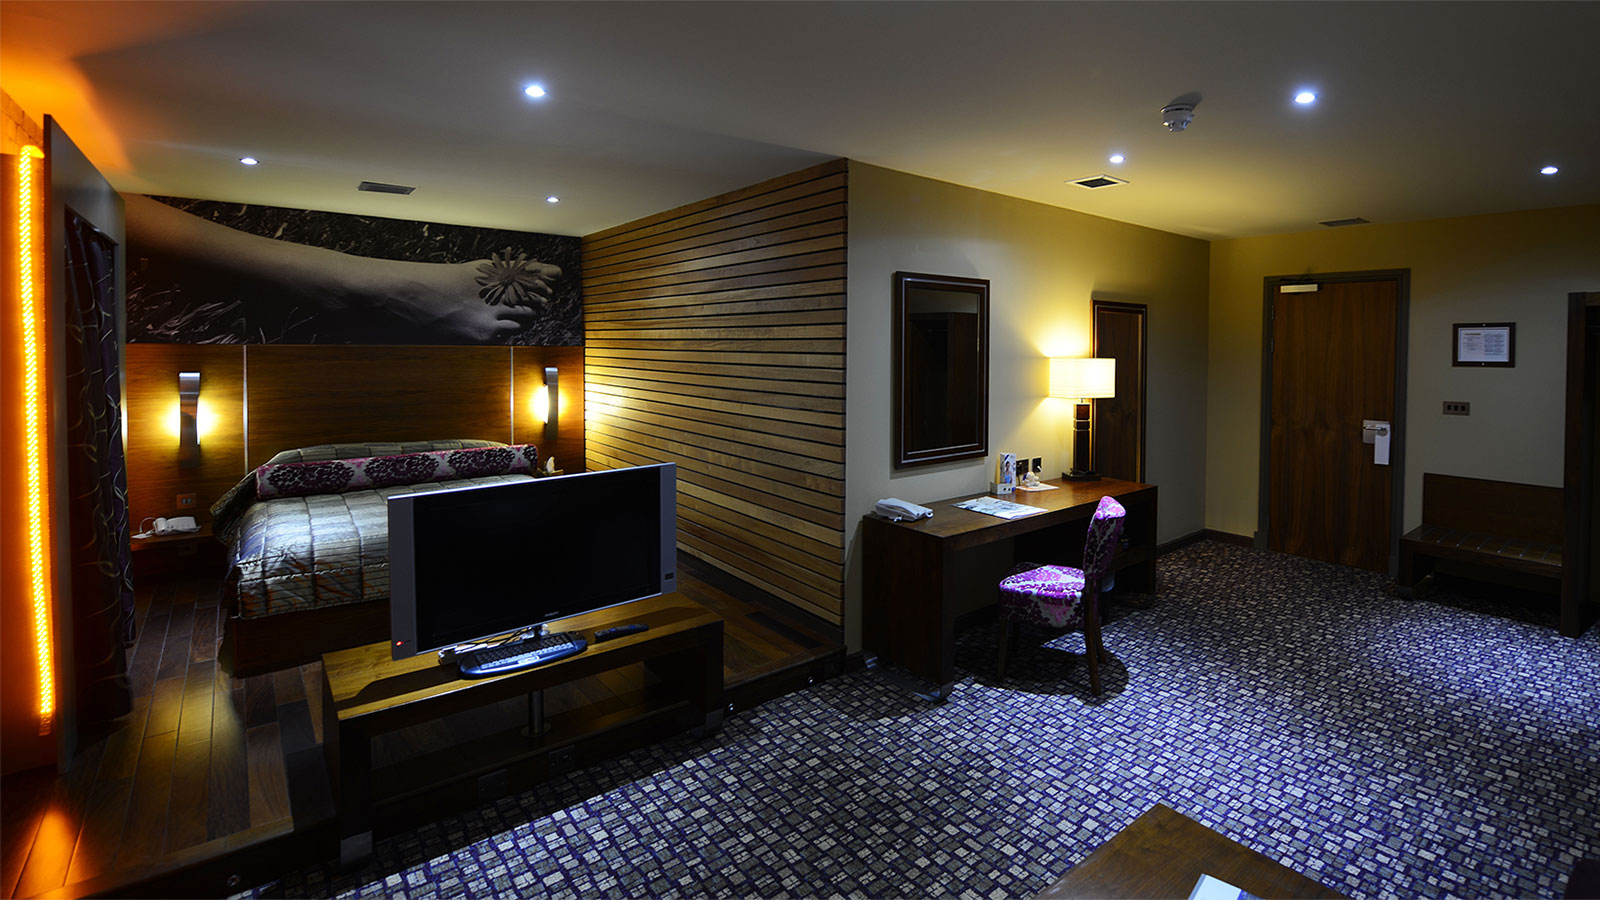 Room 501 available to book from our hotel in doncaster